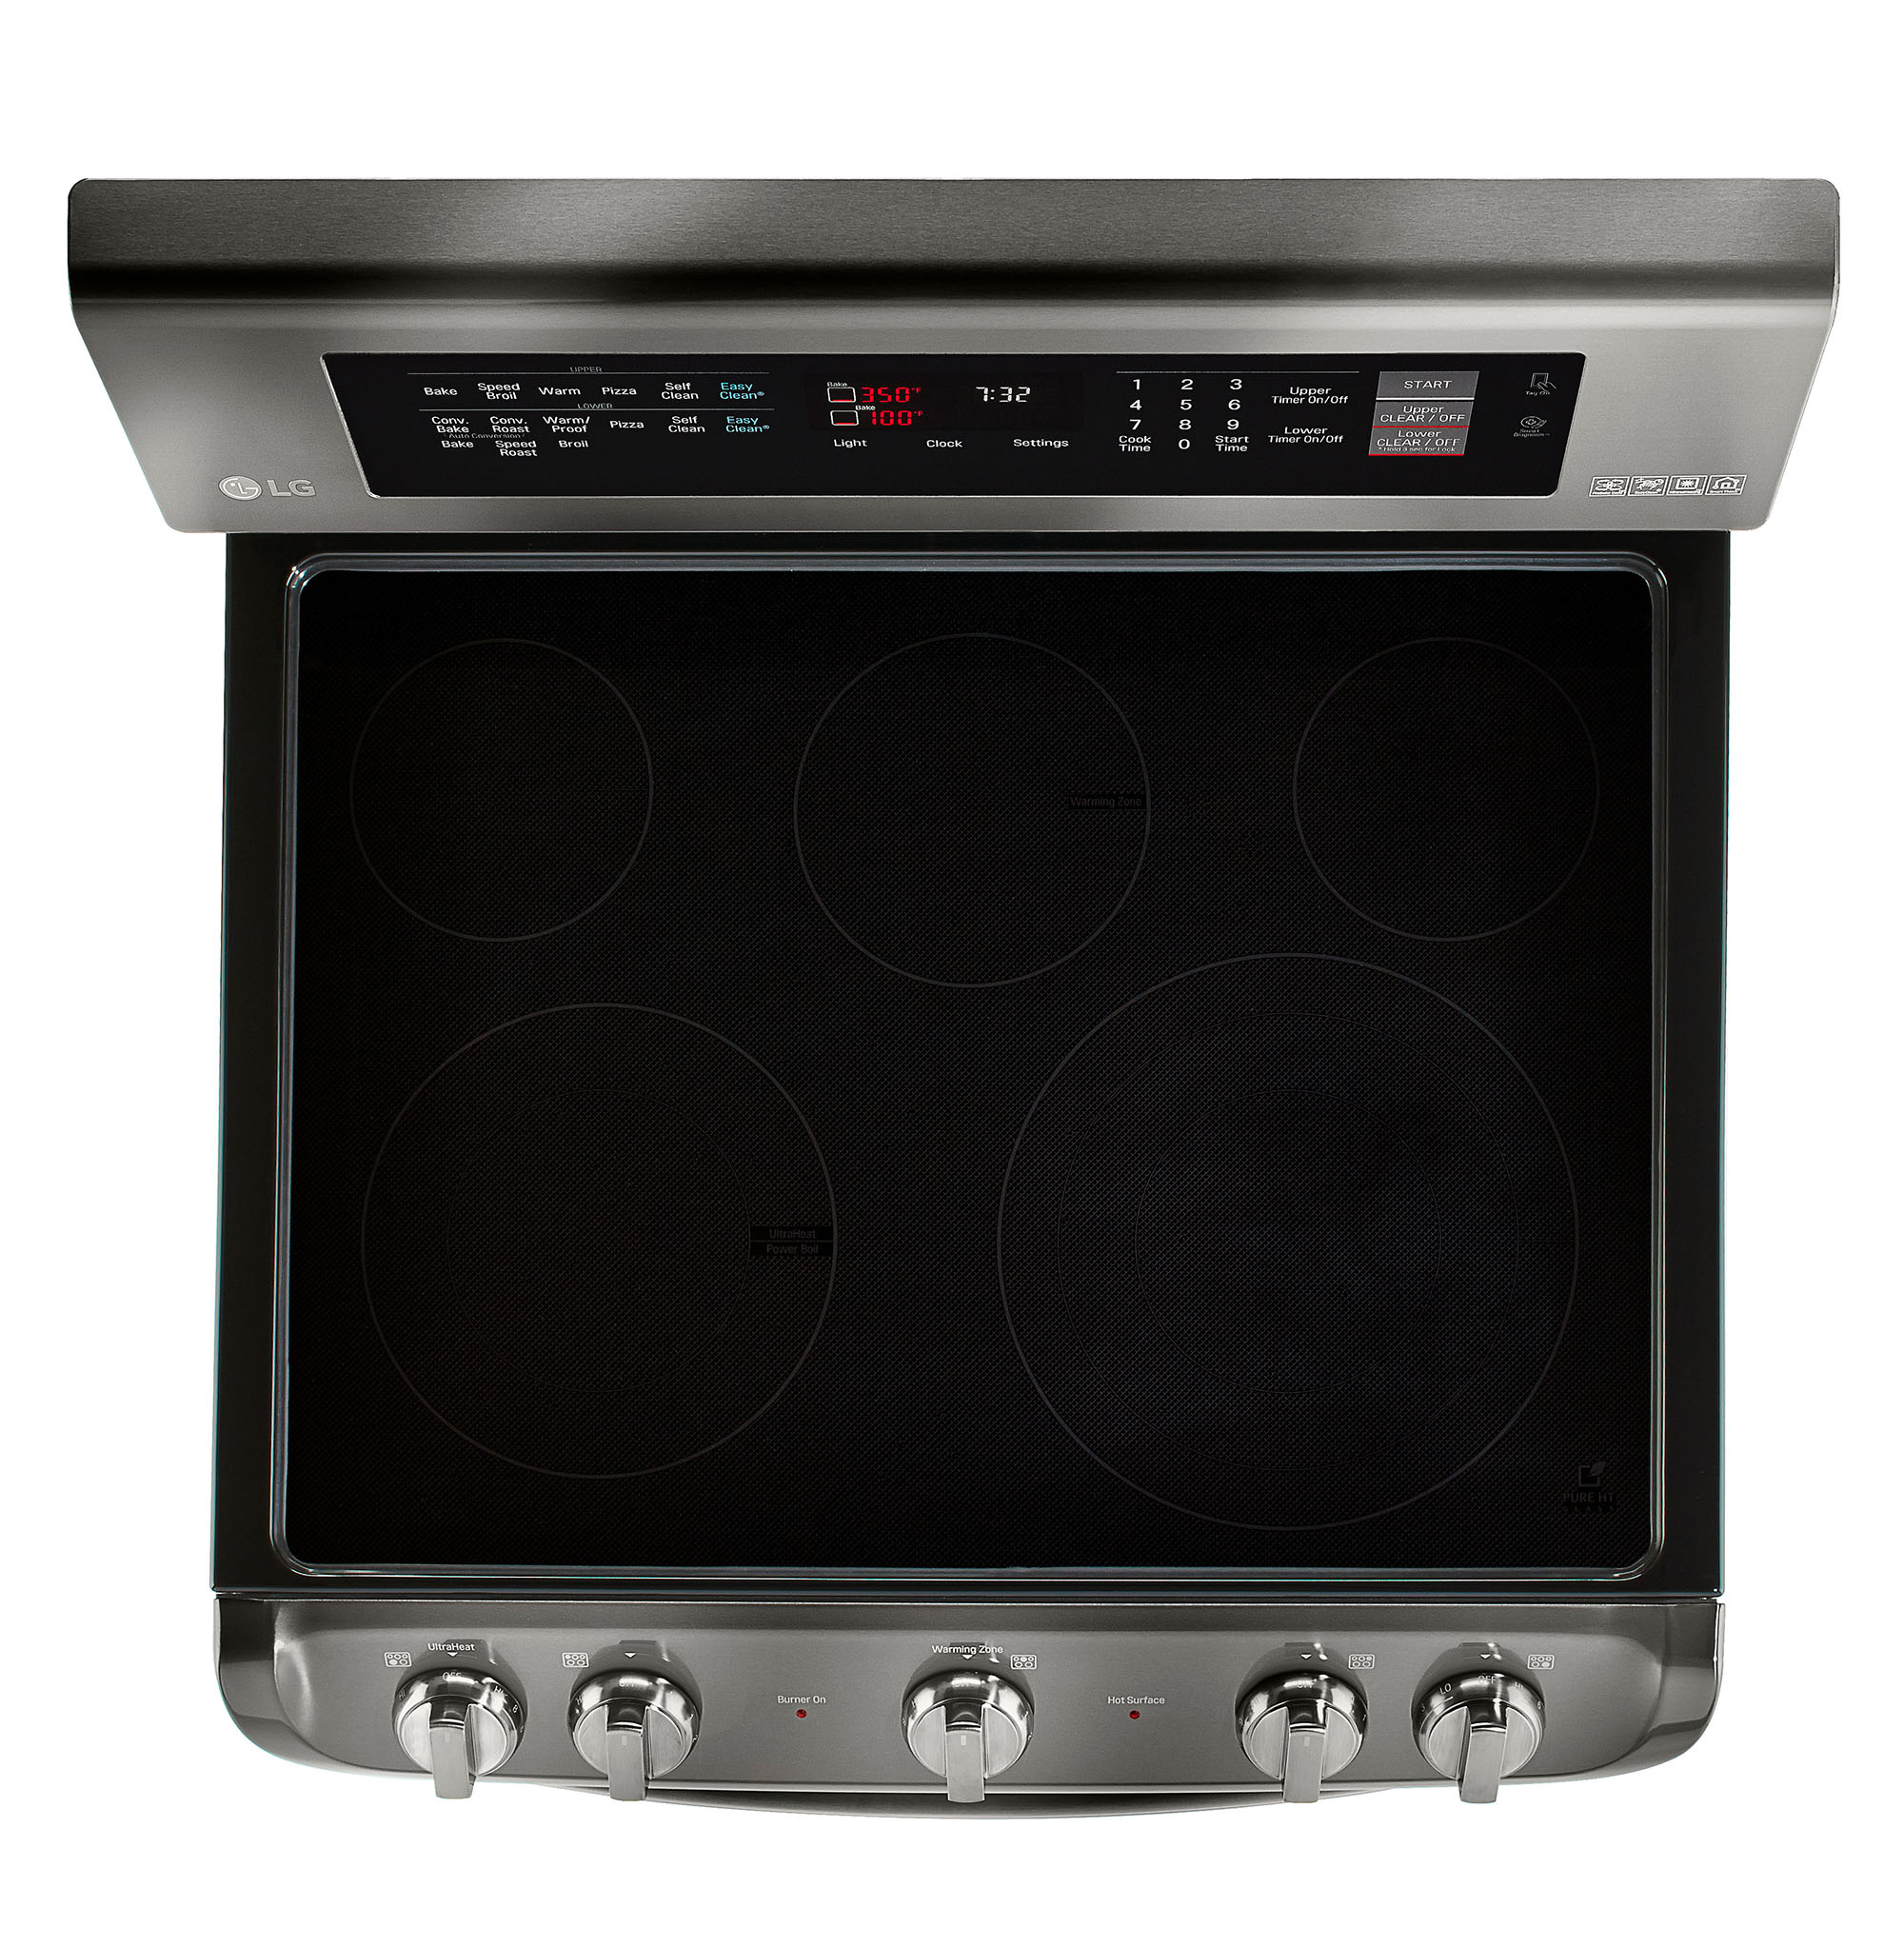 LG LDE4415BD 7.3 cu. ft. Double-Oven Electric Range w/ProBake Convection™ & EasyClean® – Black Stainless Steel